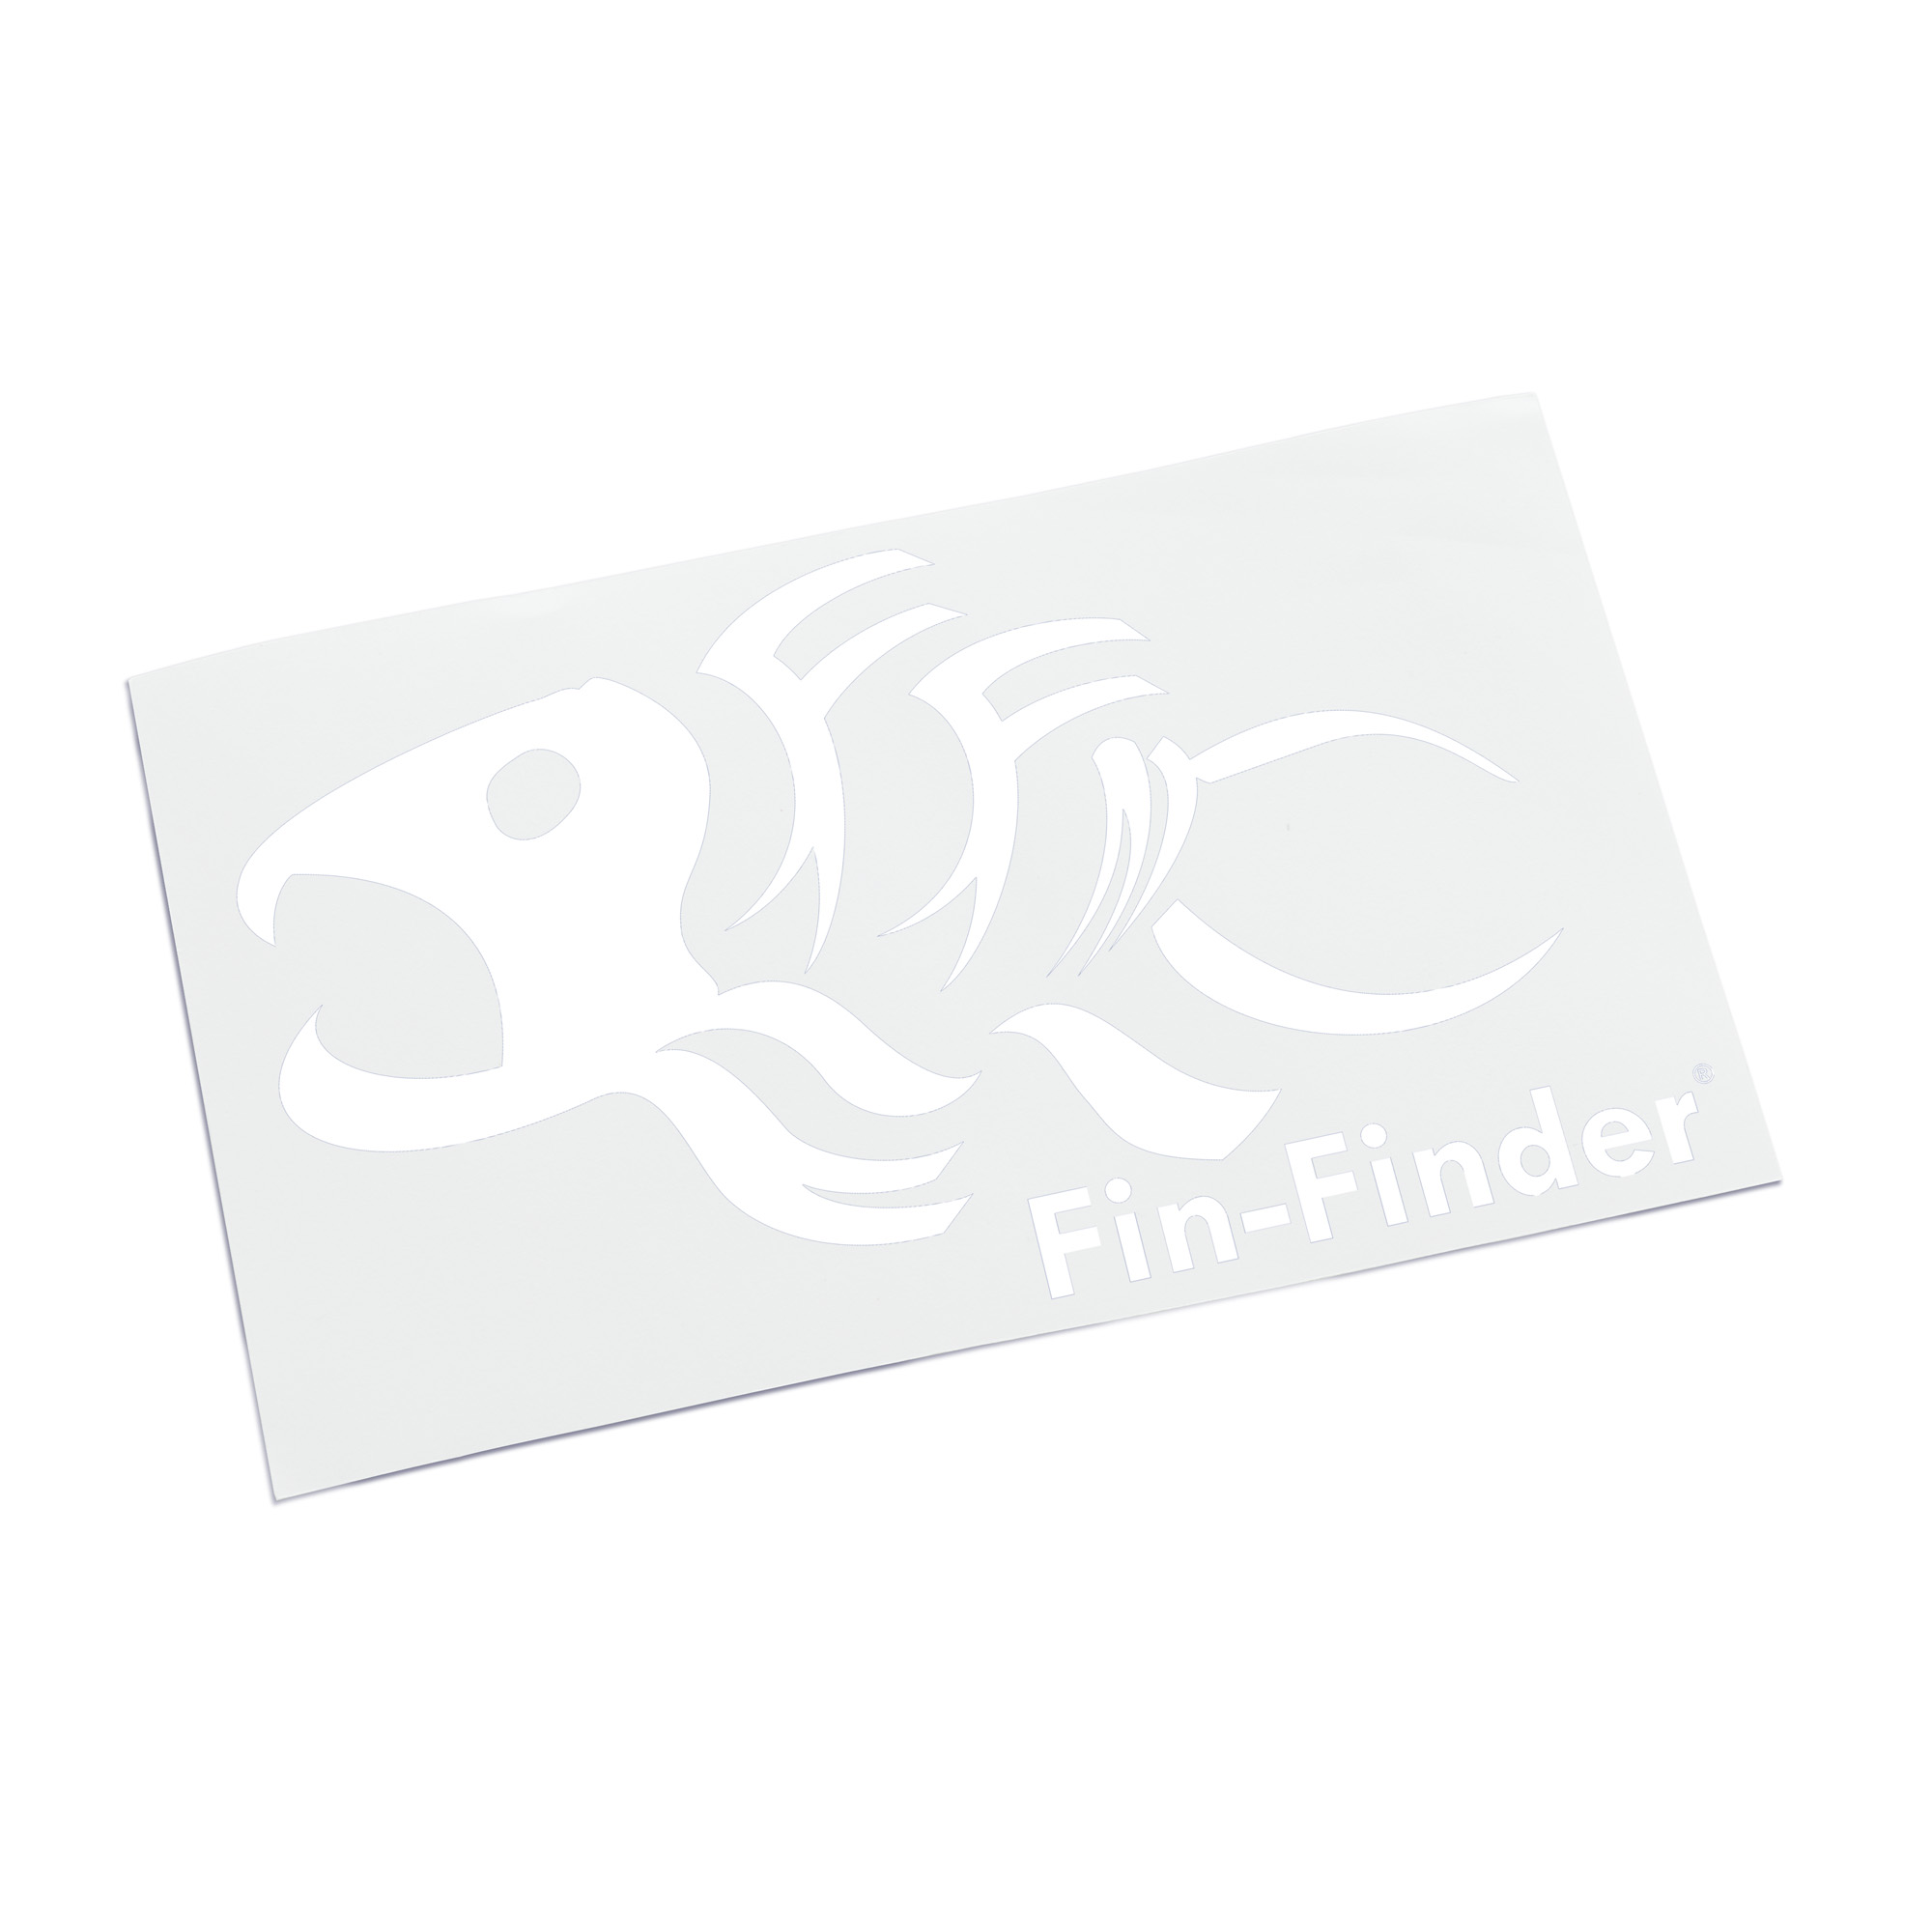 Fin-Finder Decal